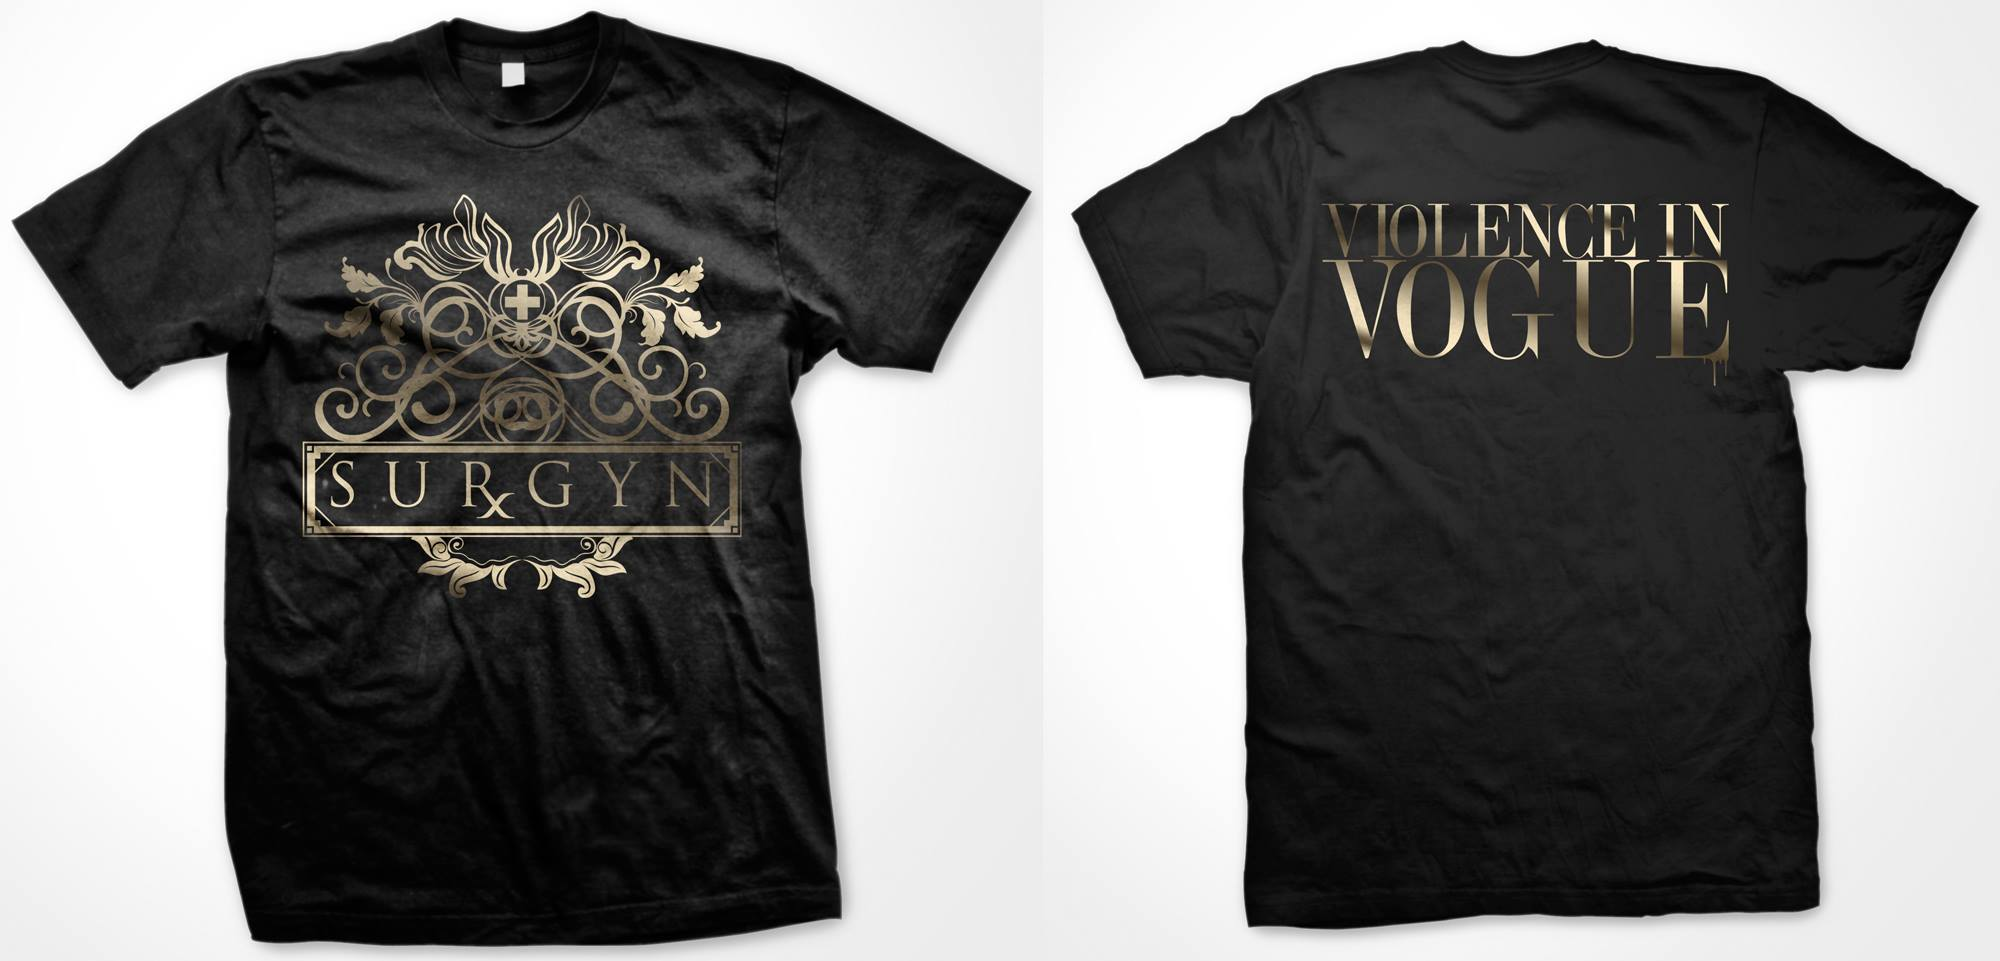 Black t shirt with gold design -  Violence In Vogue T Shirt Campaign Exclusive Design